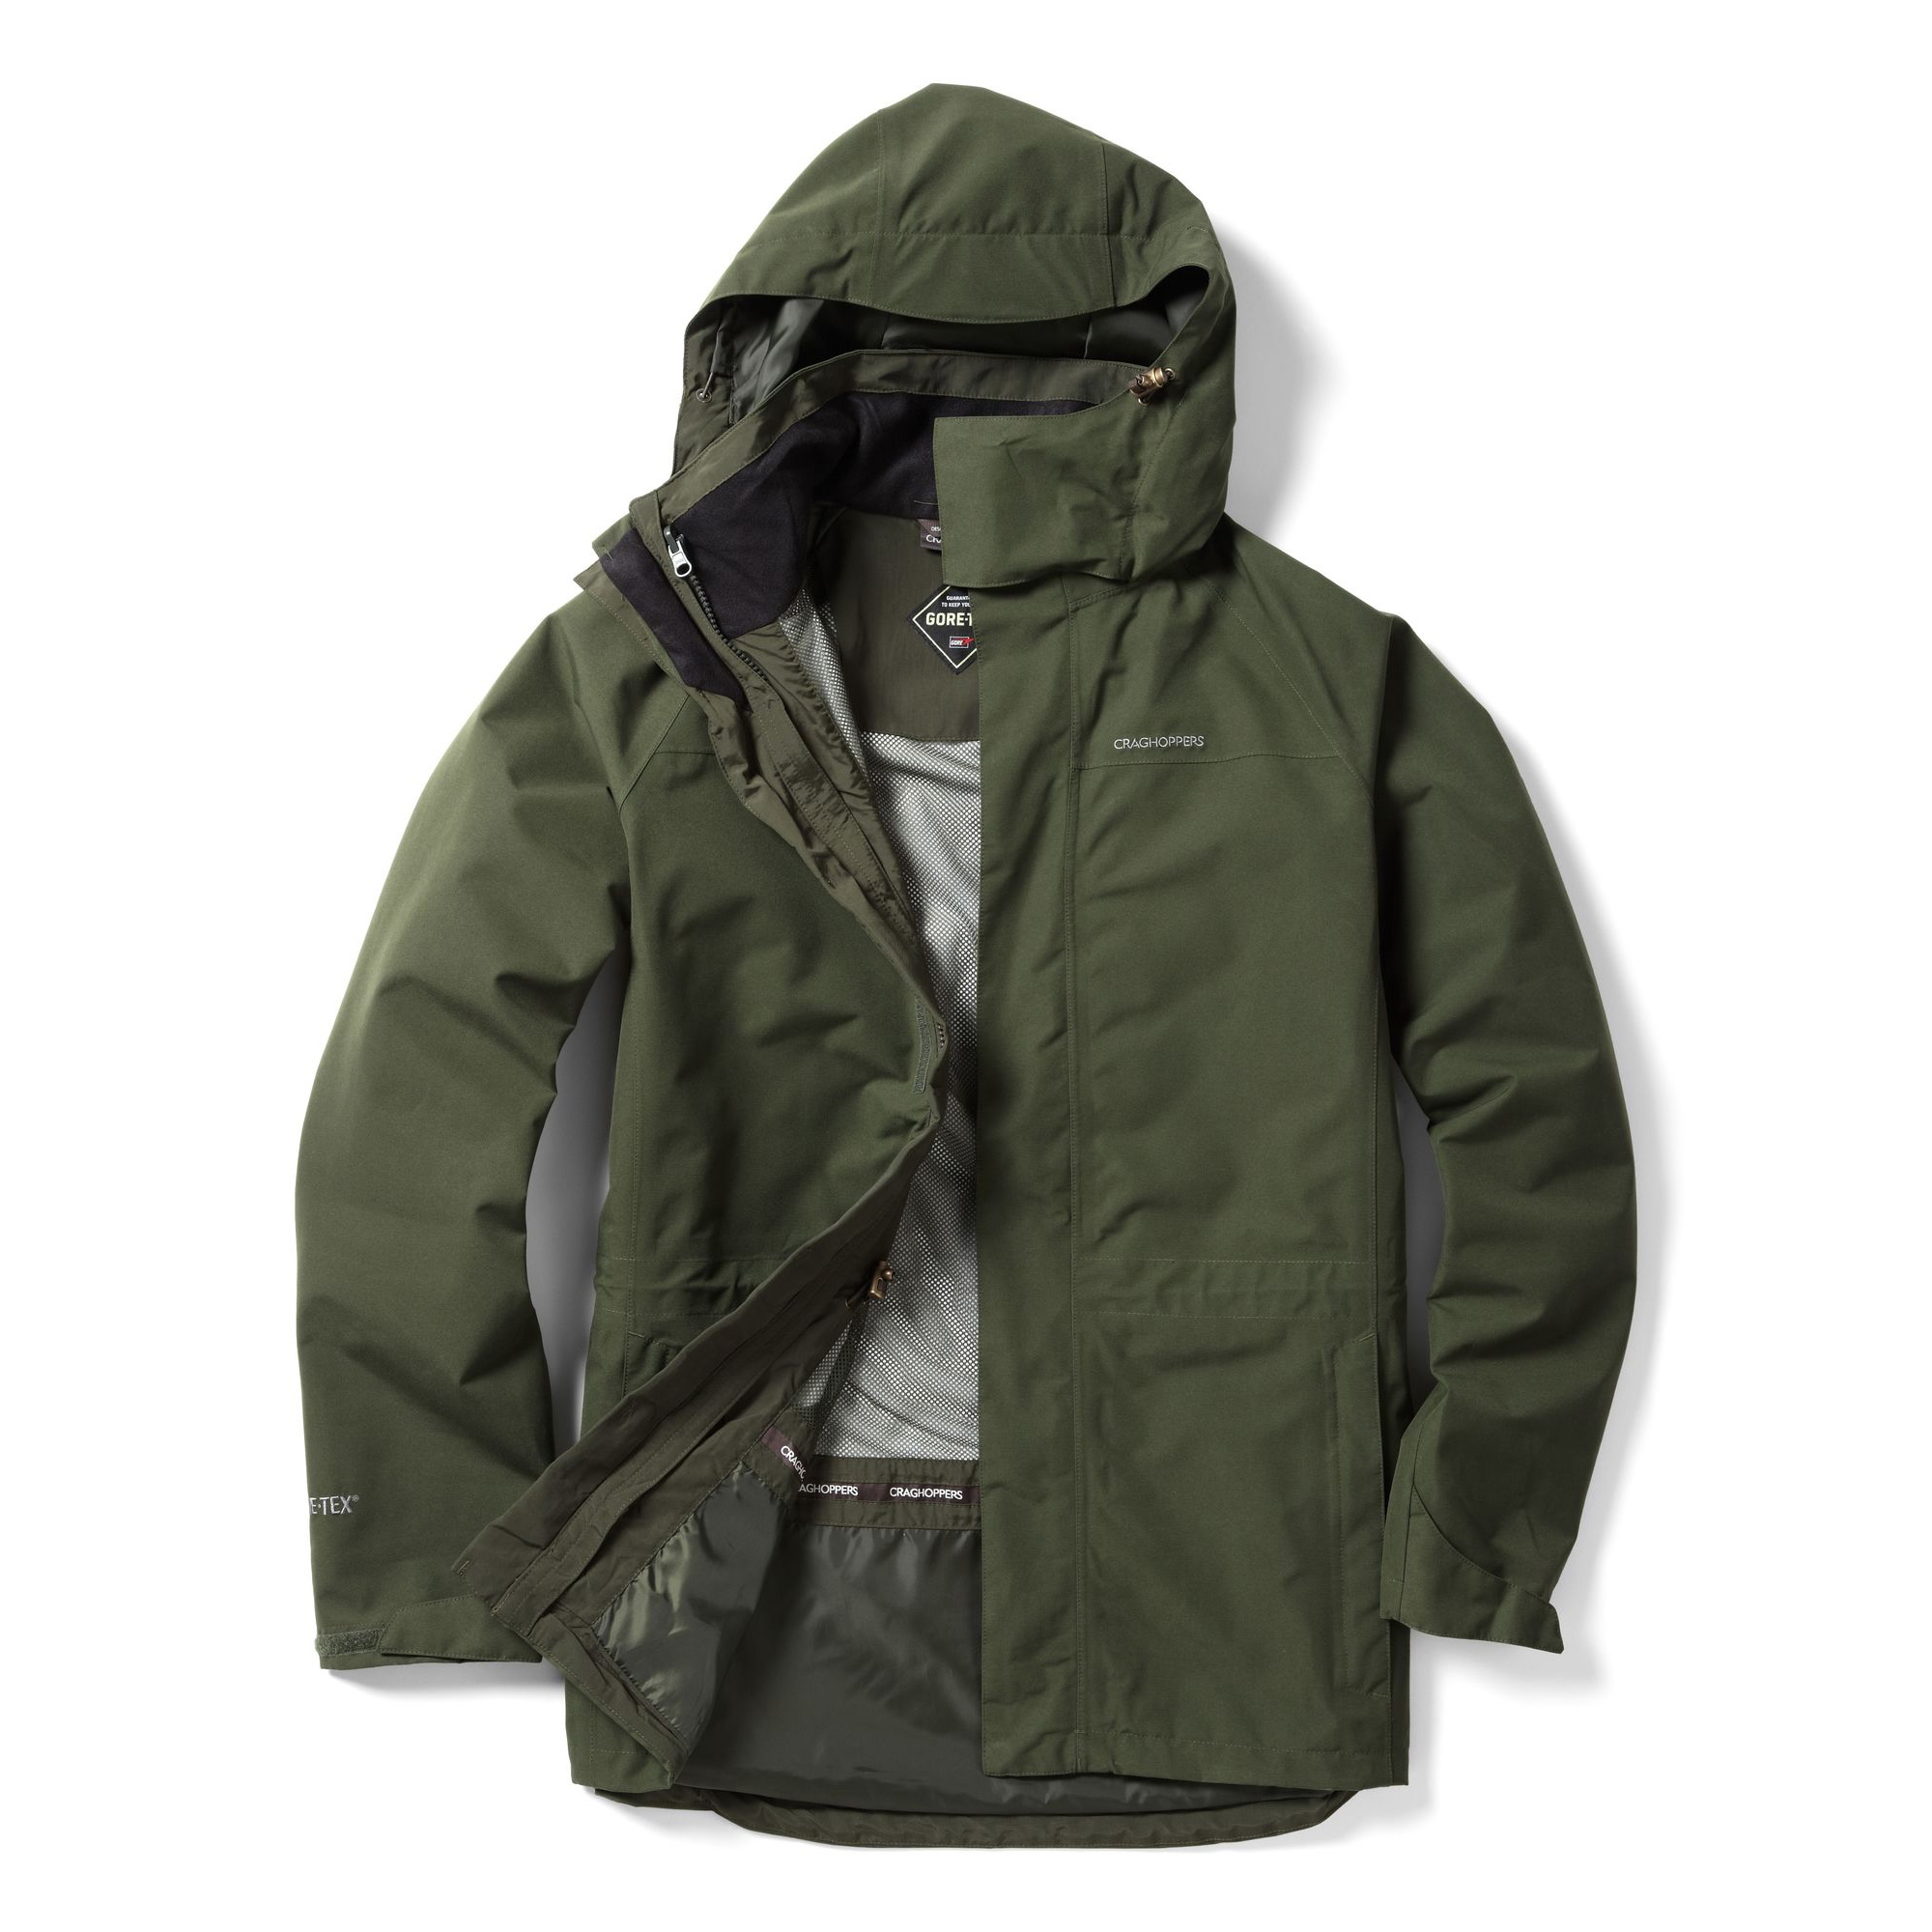 887d9b7050 ... Image of Craghoppers Ashton GTX Interactive Jacket - Evergreen